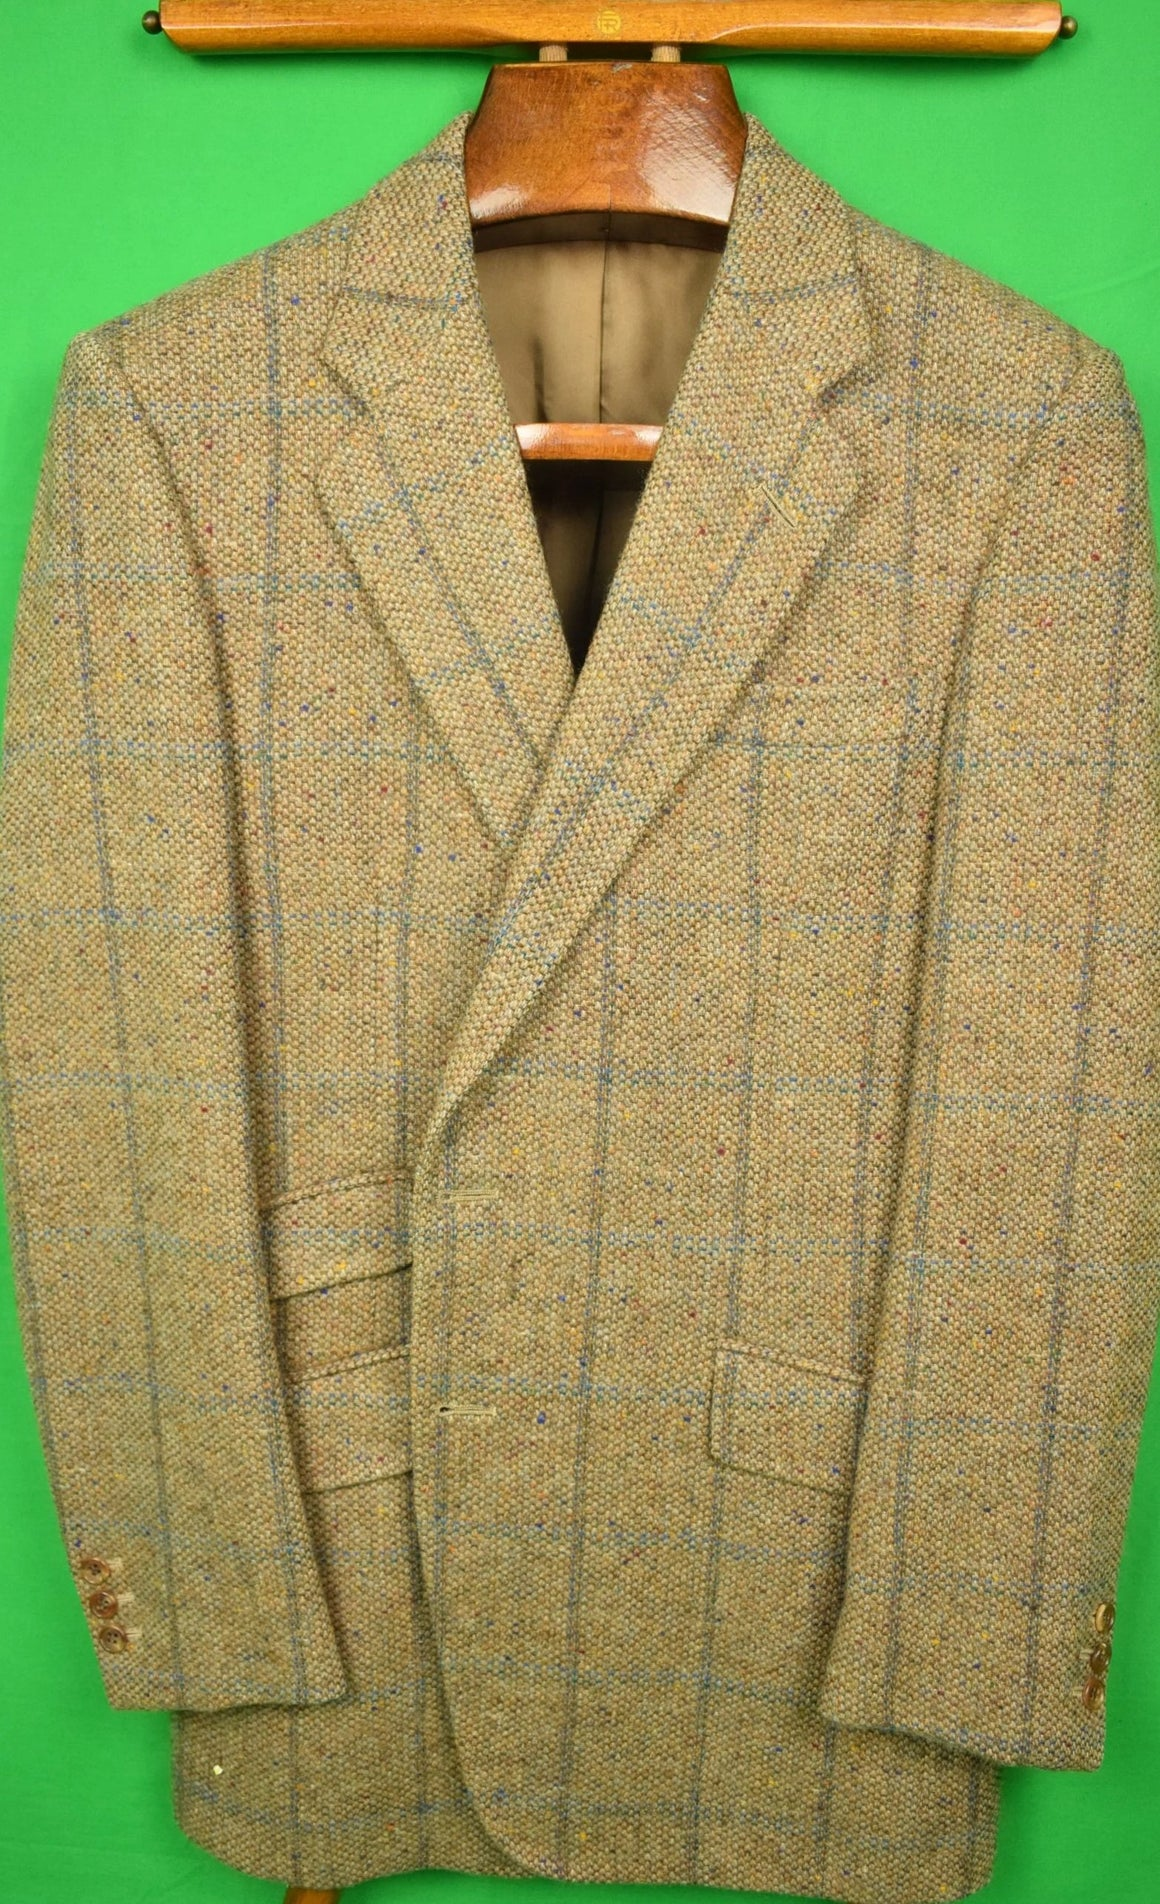 "H Huntsman & Sons for Louis Intl of Boston Barleycorn Donegal Tweed Windowpane Sport Jacket Sz 41""R"